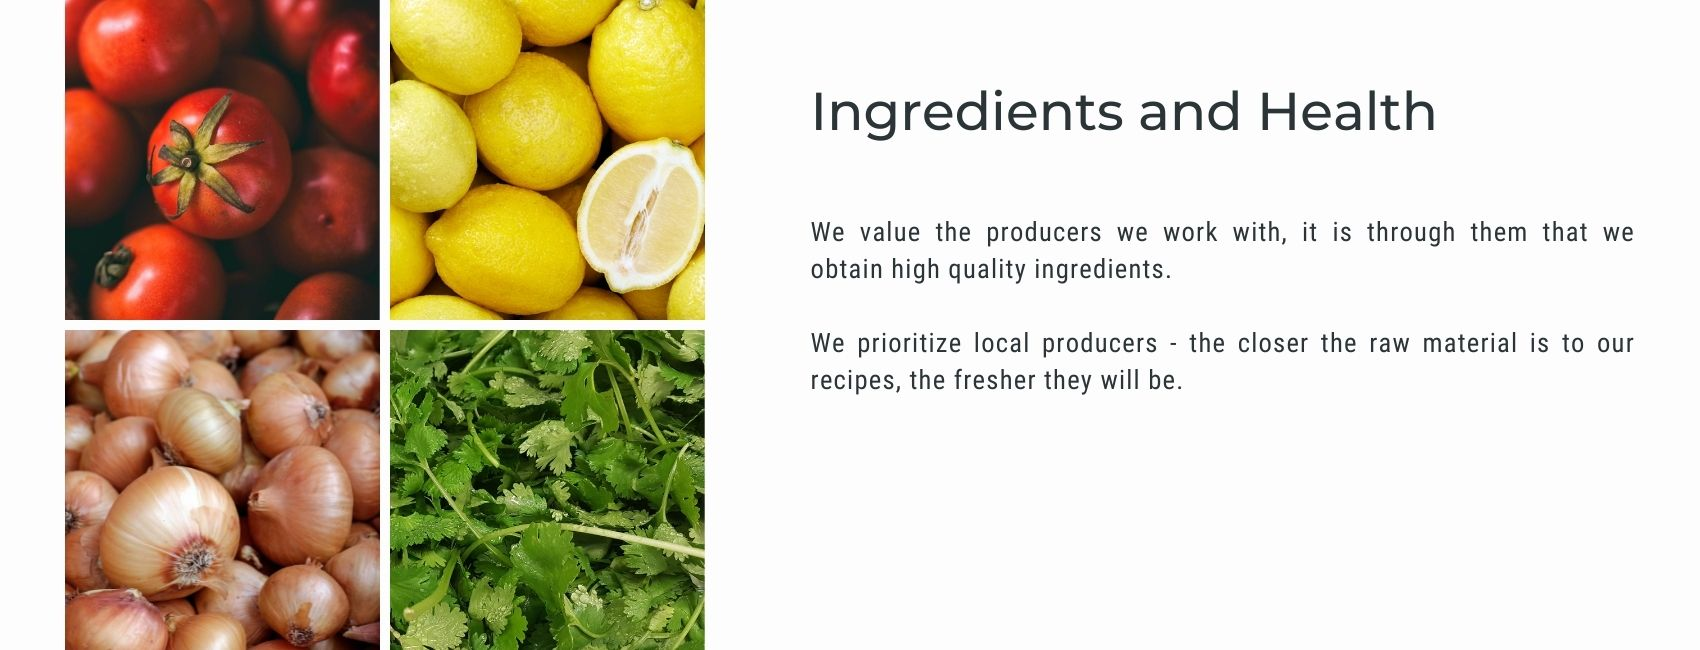 We value the producers we work with, it is through them that we obtain high quality ingredients.  We prioritize local producers - the closer the raw material is to our recipes, the fresher they will be.